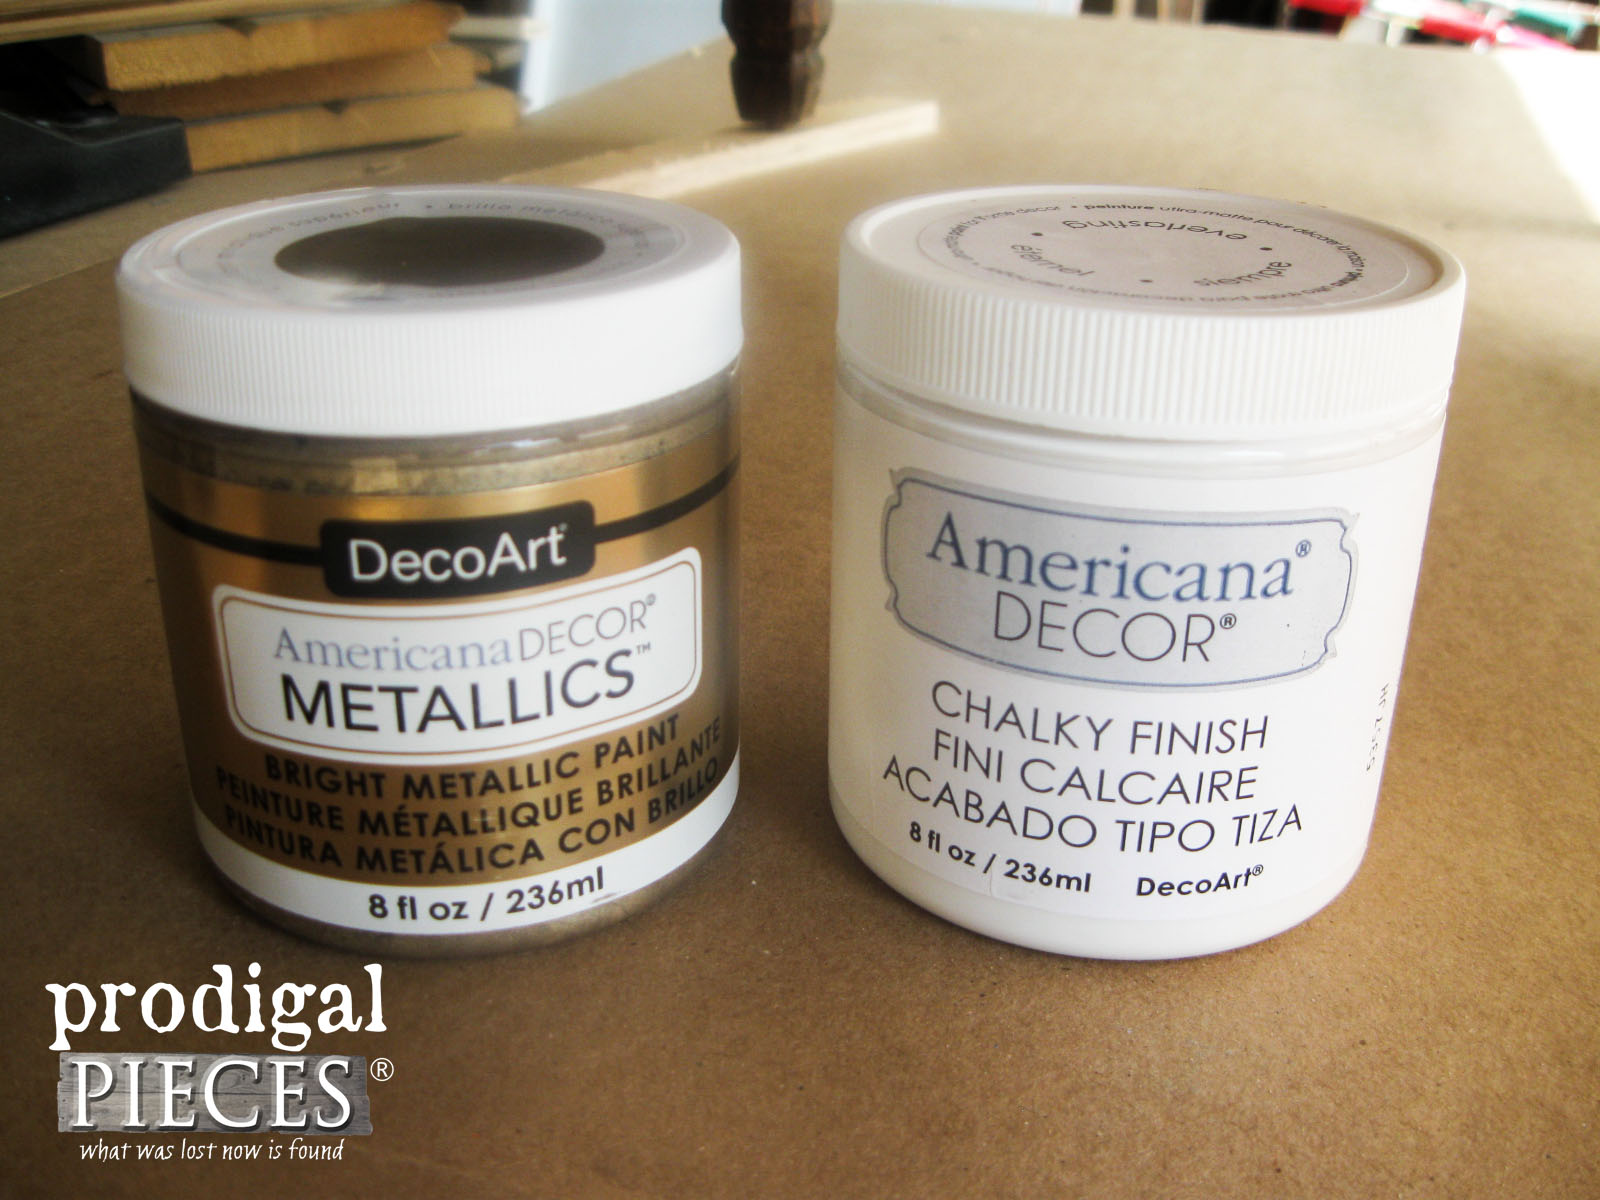 DecoArt Americana Metallic and Chalky Finish Paint for Makeover by Prodigal Pieces | www.prodigalpieces.com